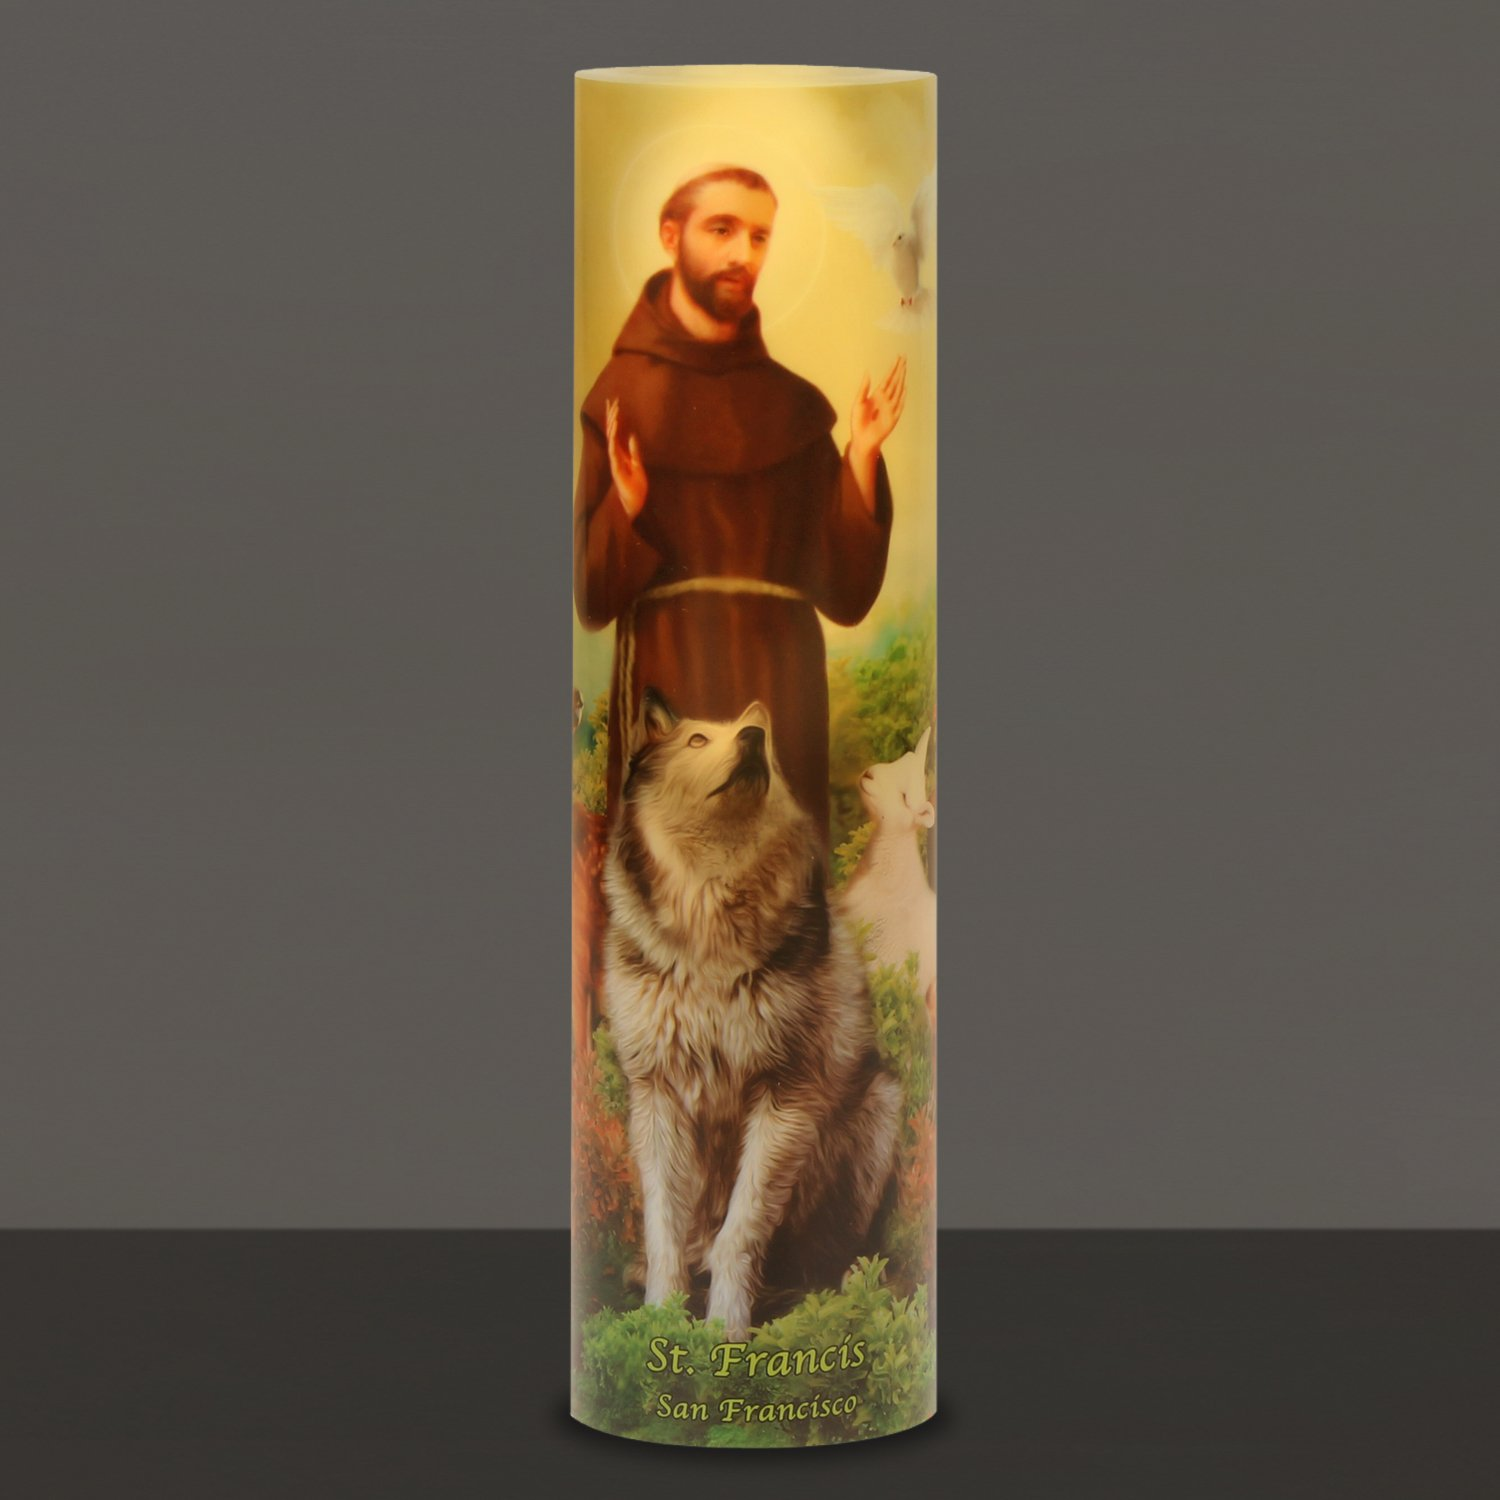 Saint Francis, LED Flameless Devotion Prayer Candle, 6 Hour Timer, Religious Gift The Saints Gift Collection C-8008